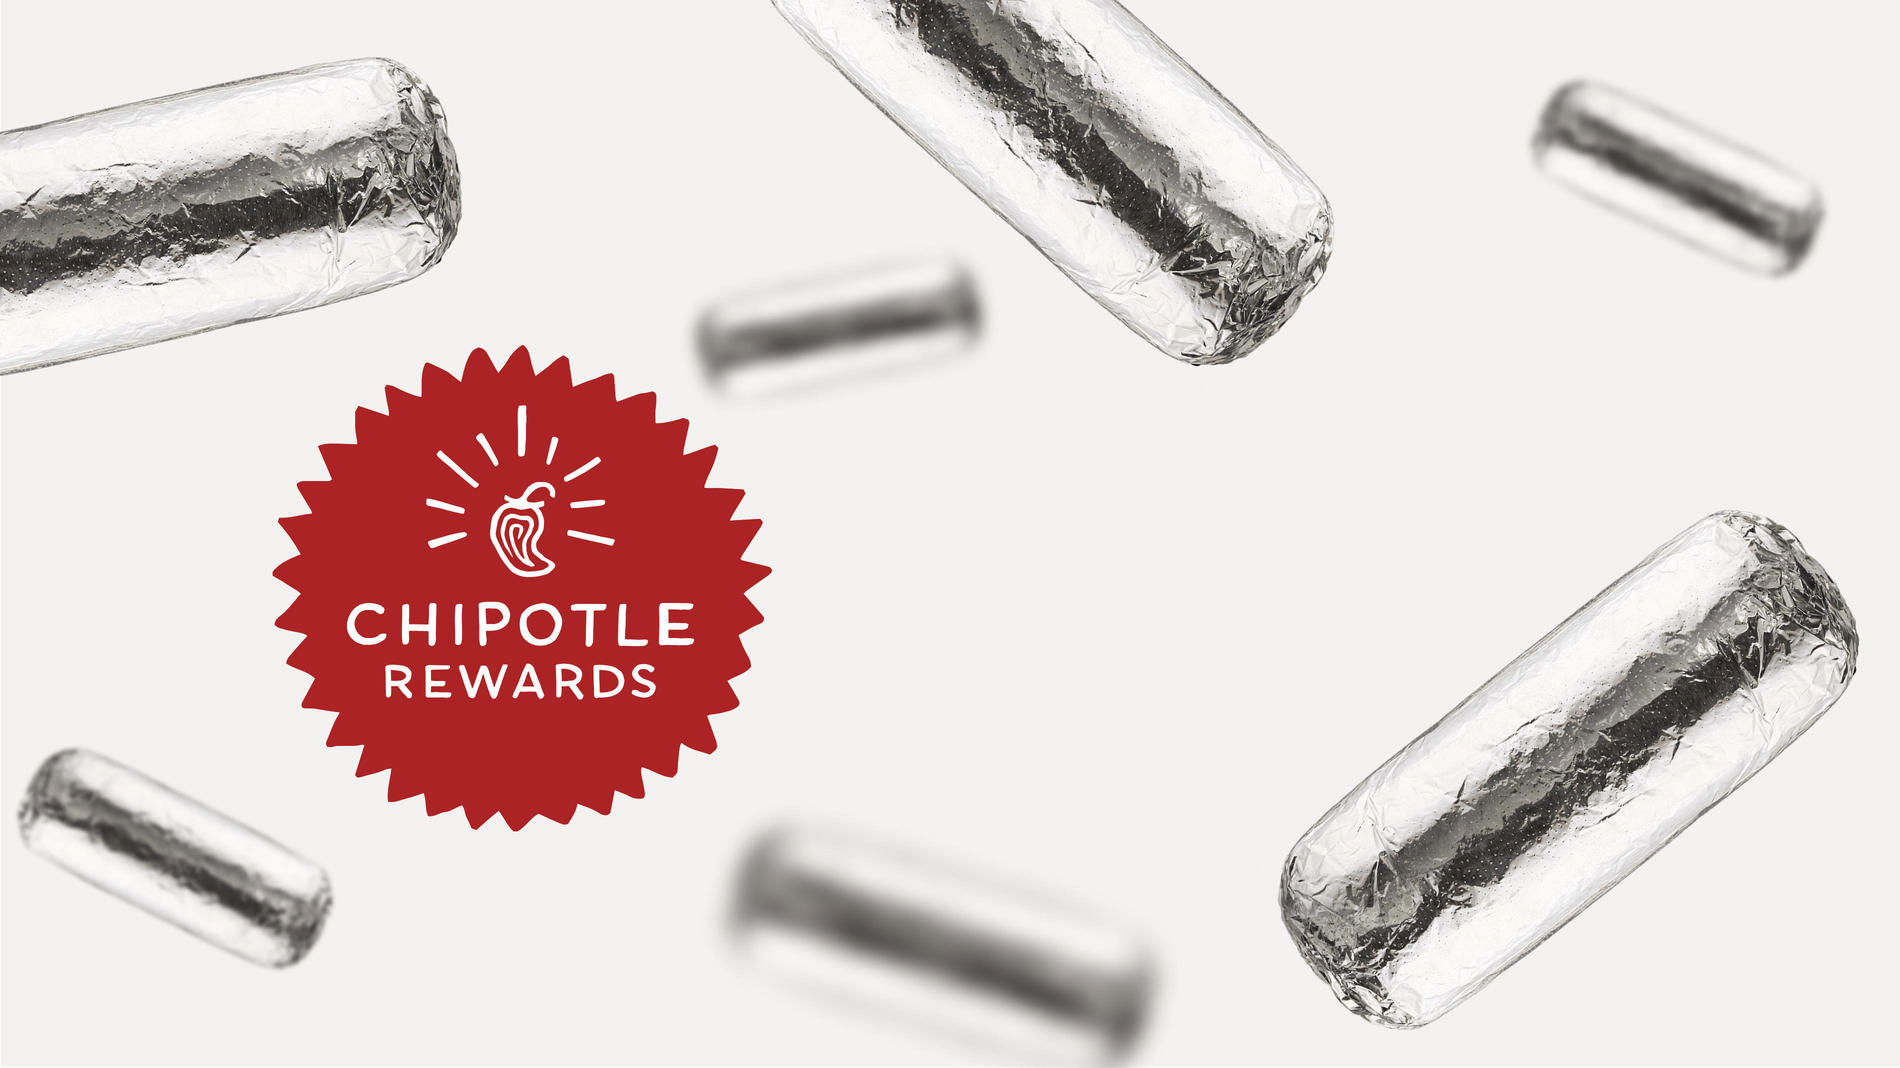 JOIN CHIPOTLE REWARDS